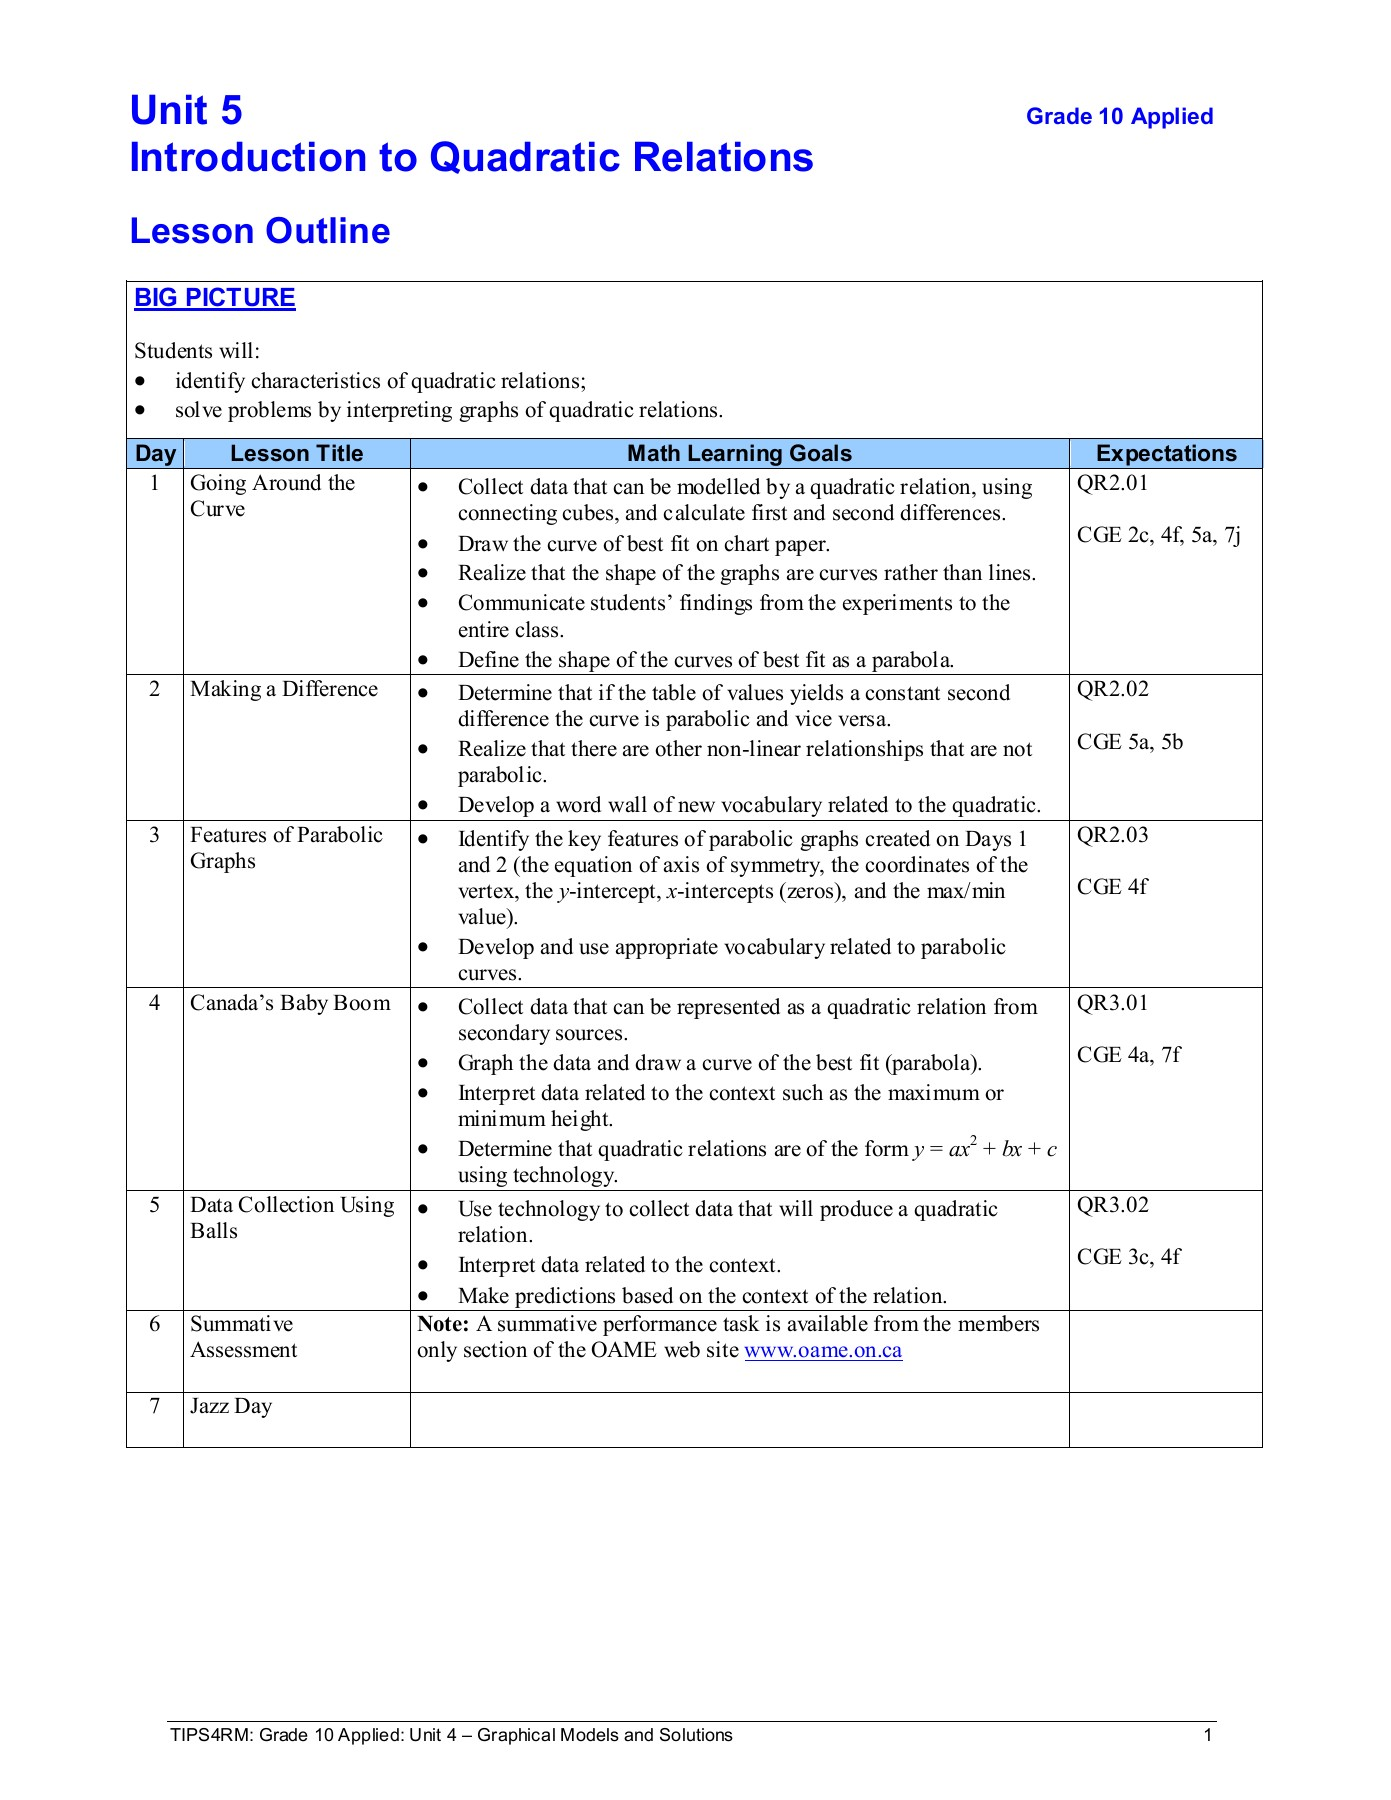 hight resolution of Unit 5 Grade 10 Applied Introduction to Quadratic Relations-Flip eBook  Pages 1 - 22  AnyFlip   AnyFlip